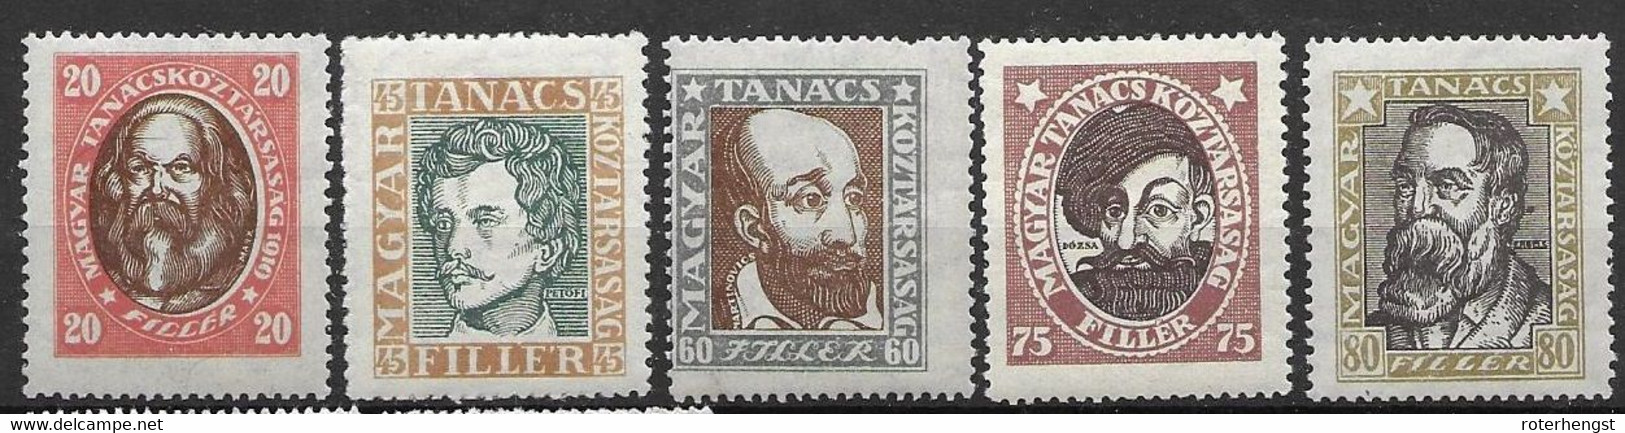 Hungary Mnh ** 54 Euros (45f Has Upright Watermark) - Unused Stamps